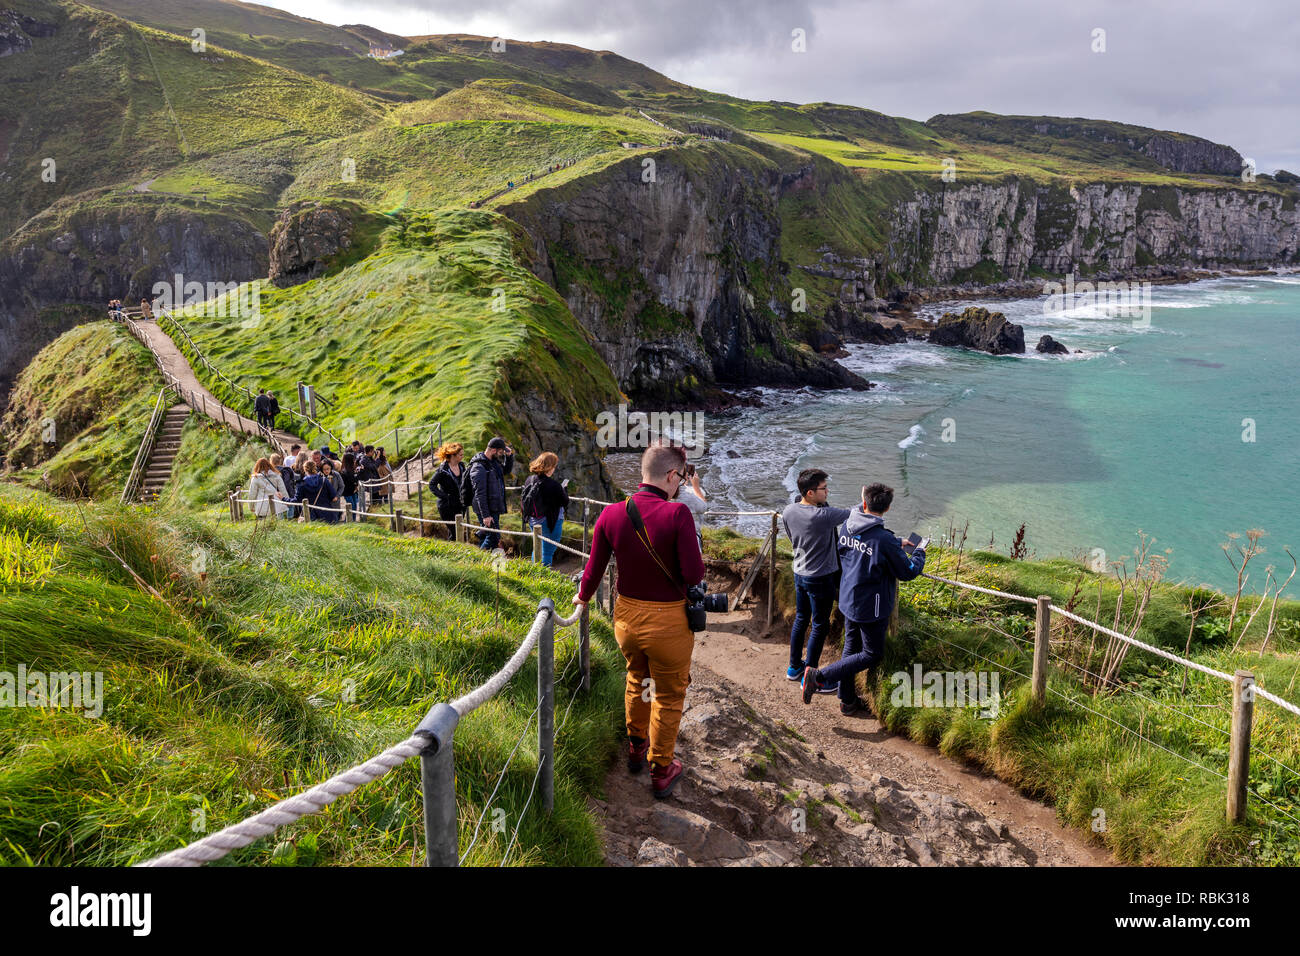 Tourists and visitors explore and walk across the Rope Bridge at Carrick-A-Rede and Larrybane Bay on the West Coast of Ireland. - Stock Image